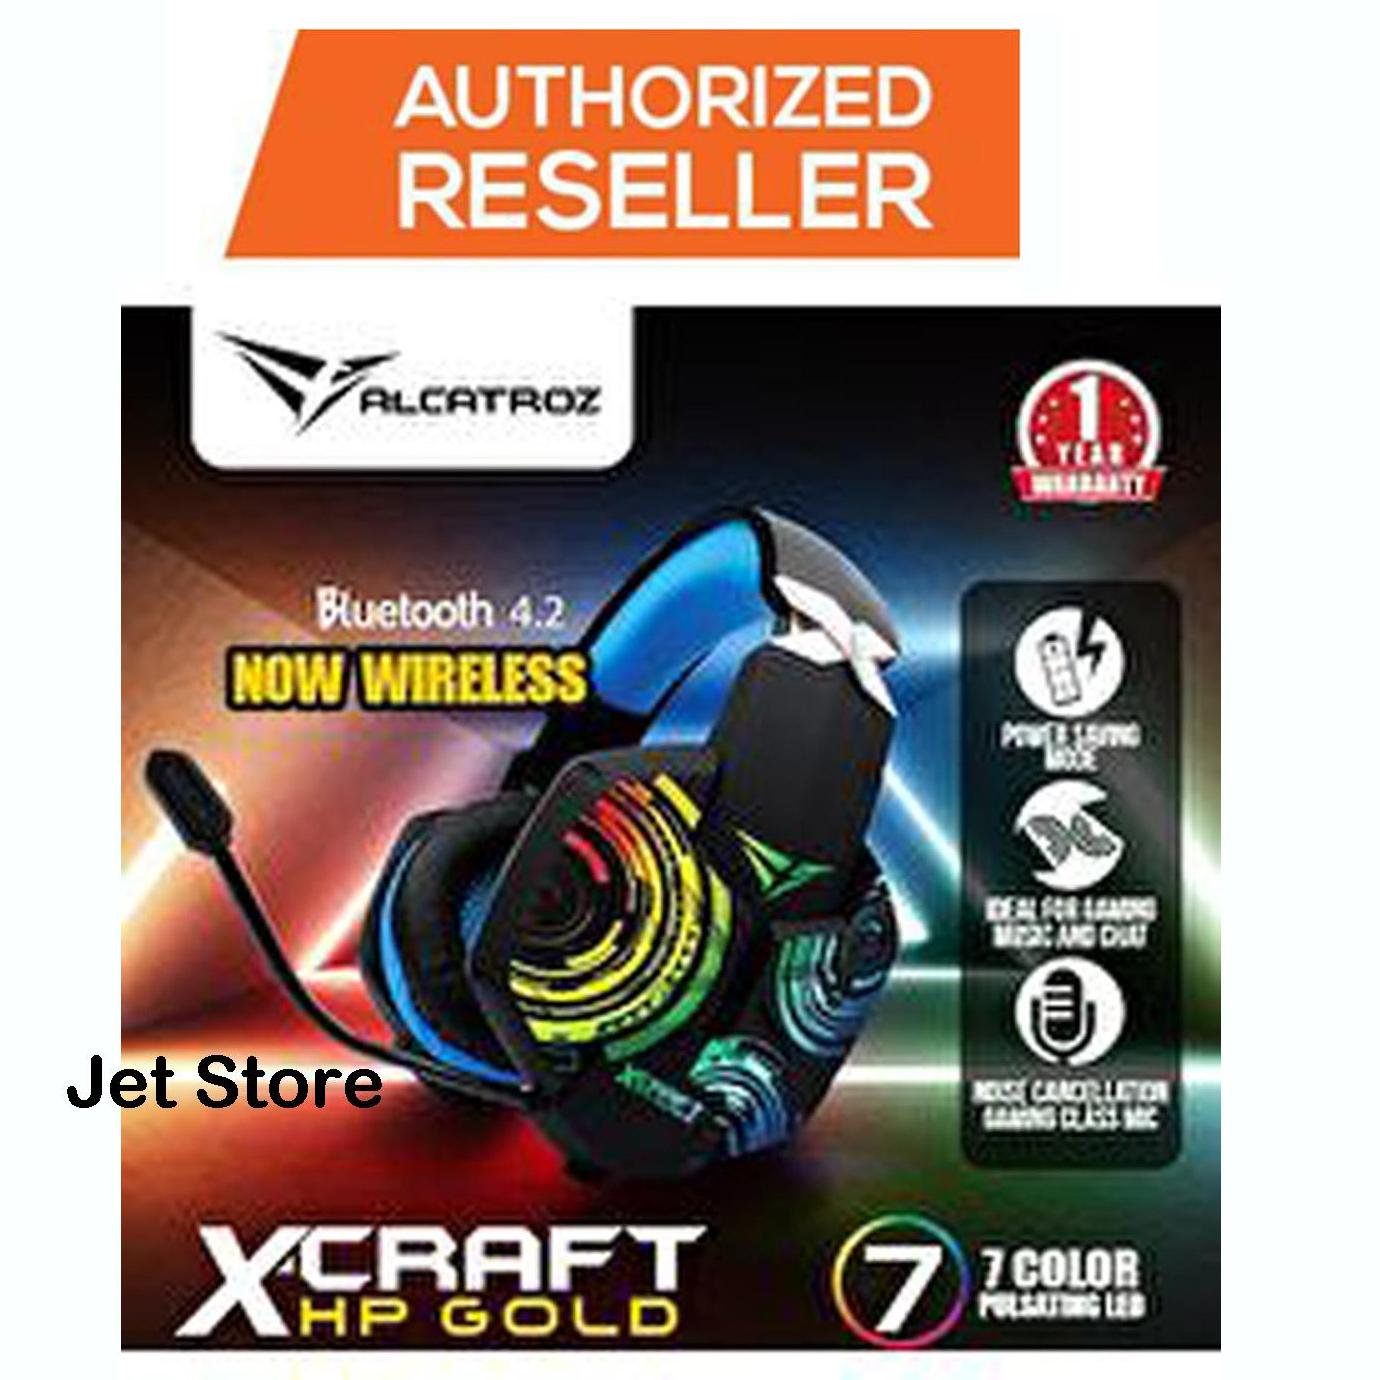 Alcatroz X-Craft HP Gold Bluetooth 4.2 Gaming Headset (Mobile/ PC) By Armaggeddon 7 lampu LED